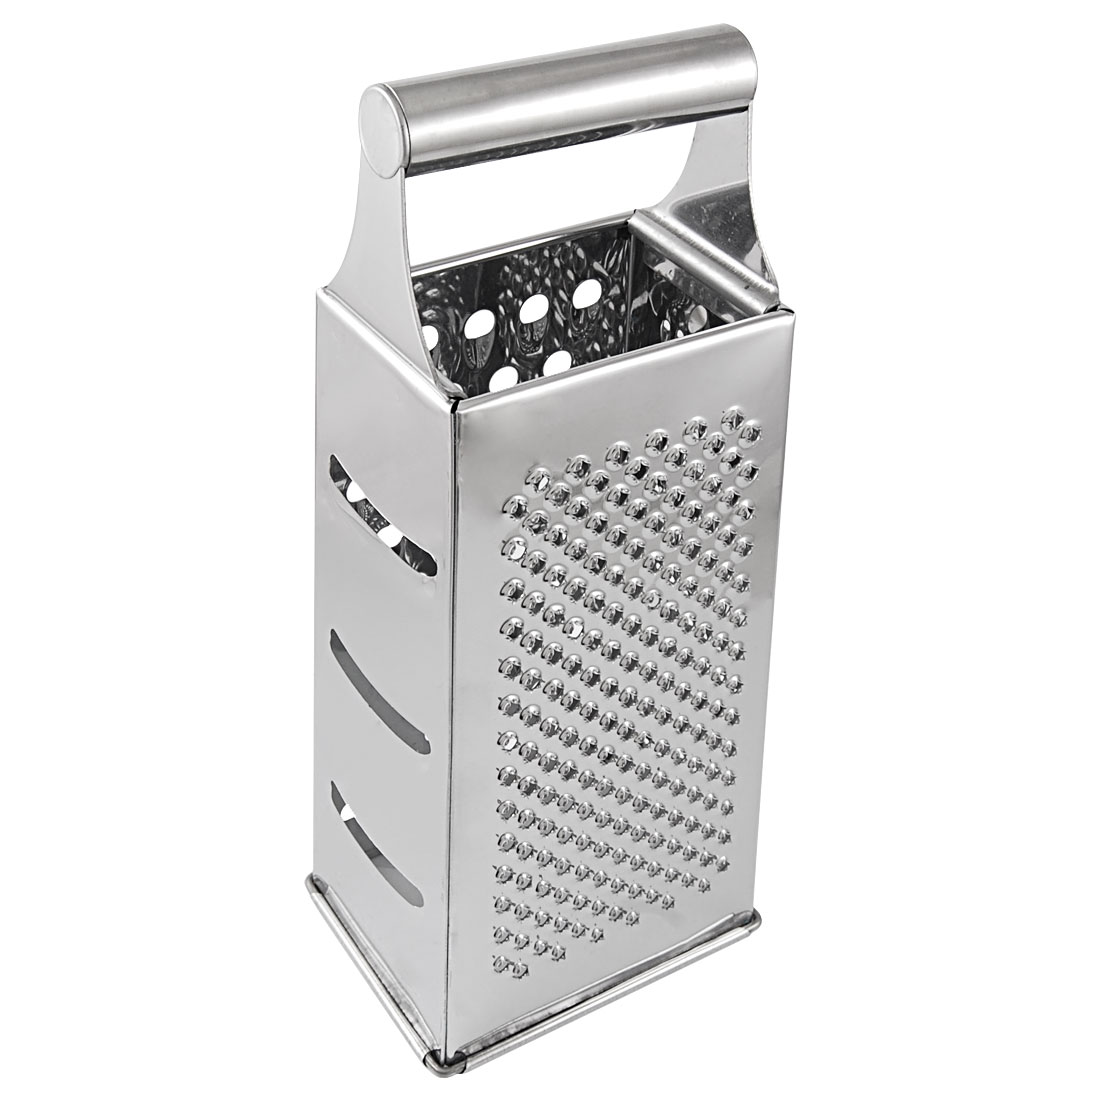 Cylinder Handle Stainless Steel Square 4 Sides Vegetable Carrot Grater